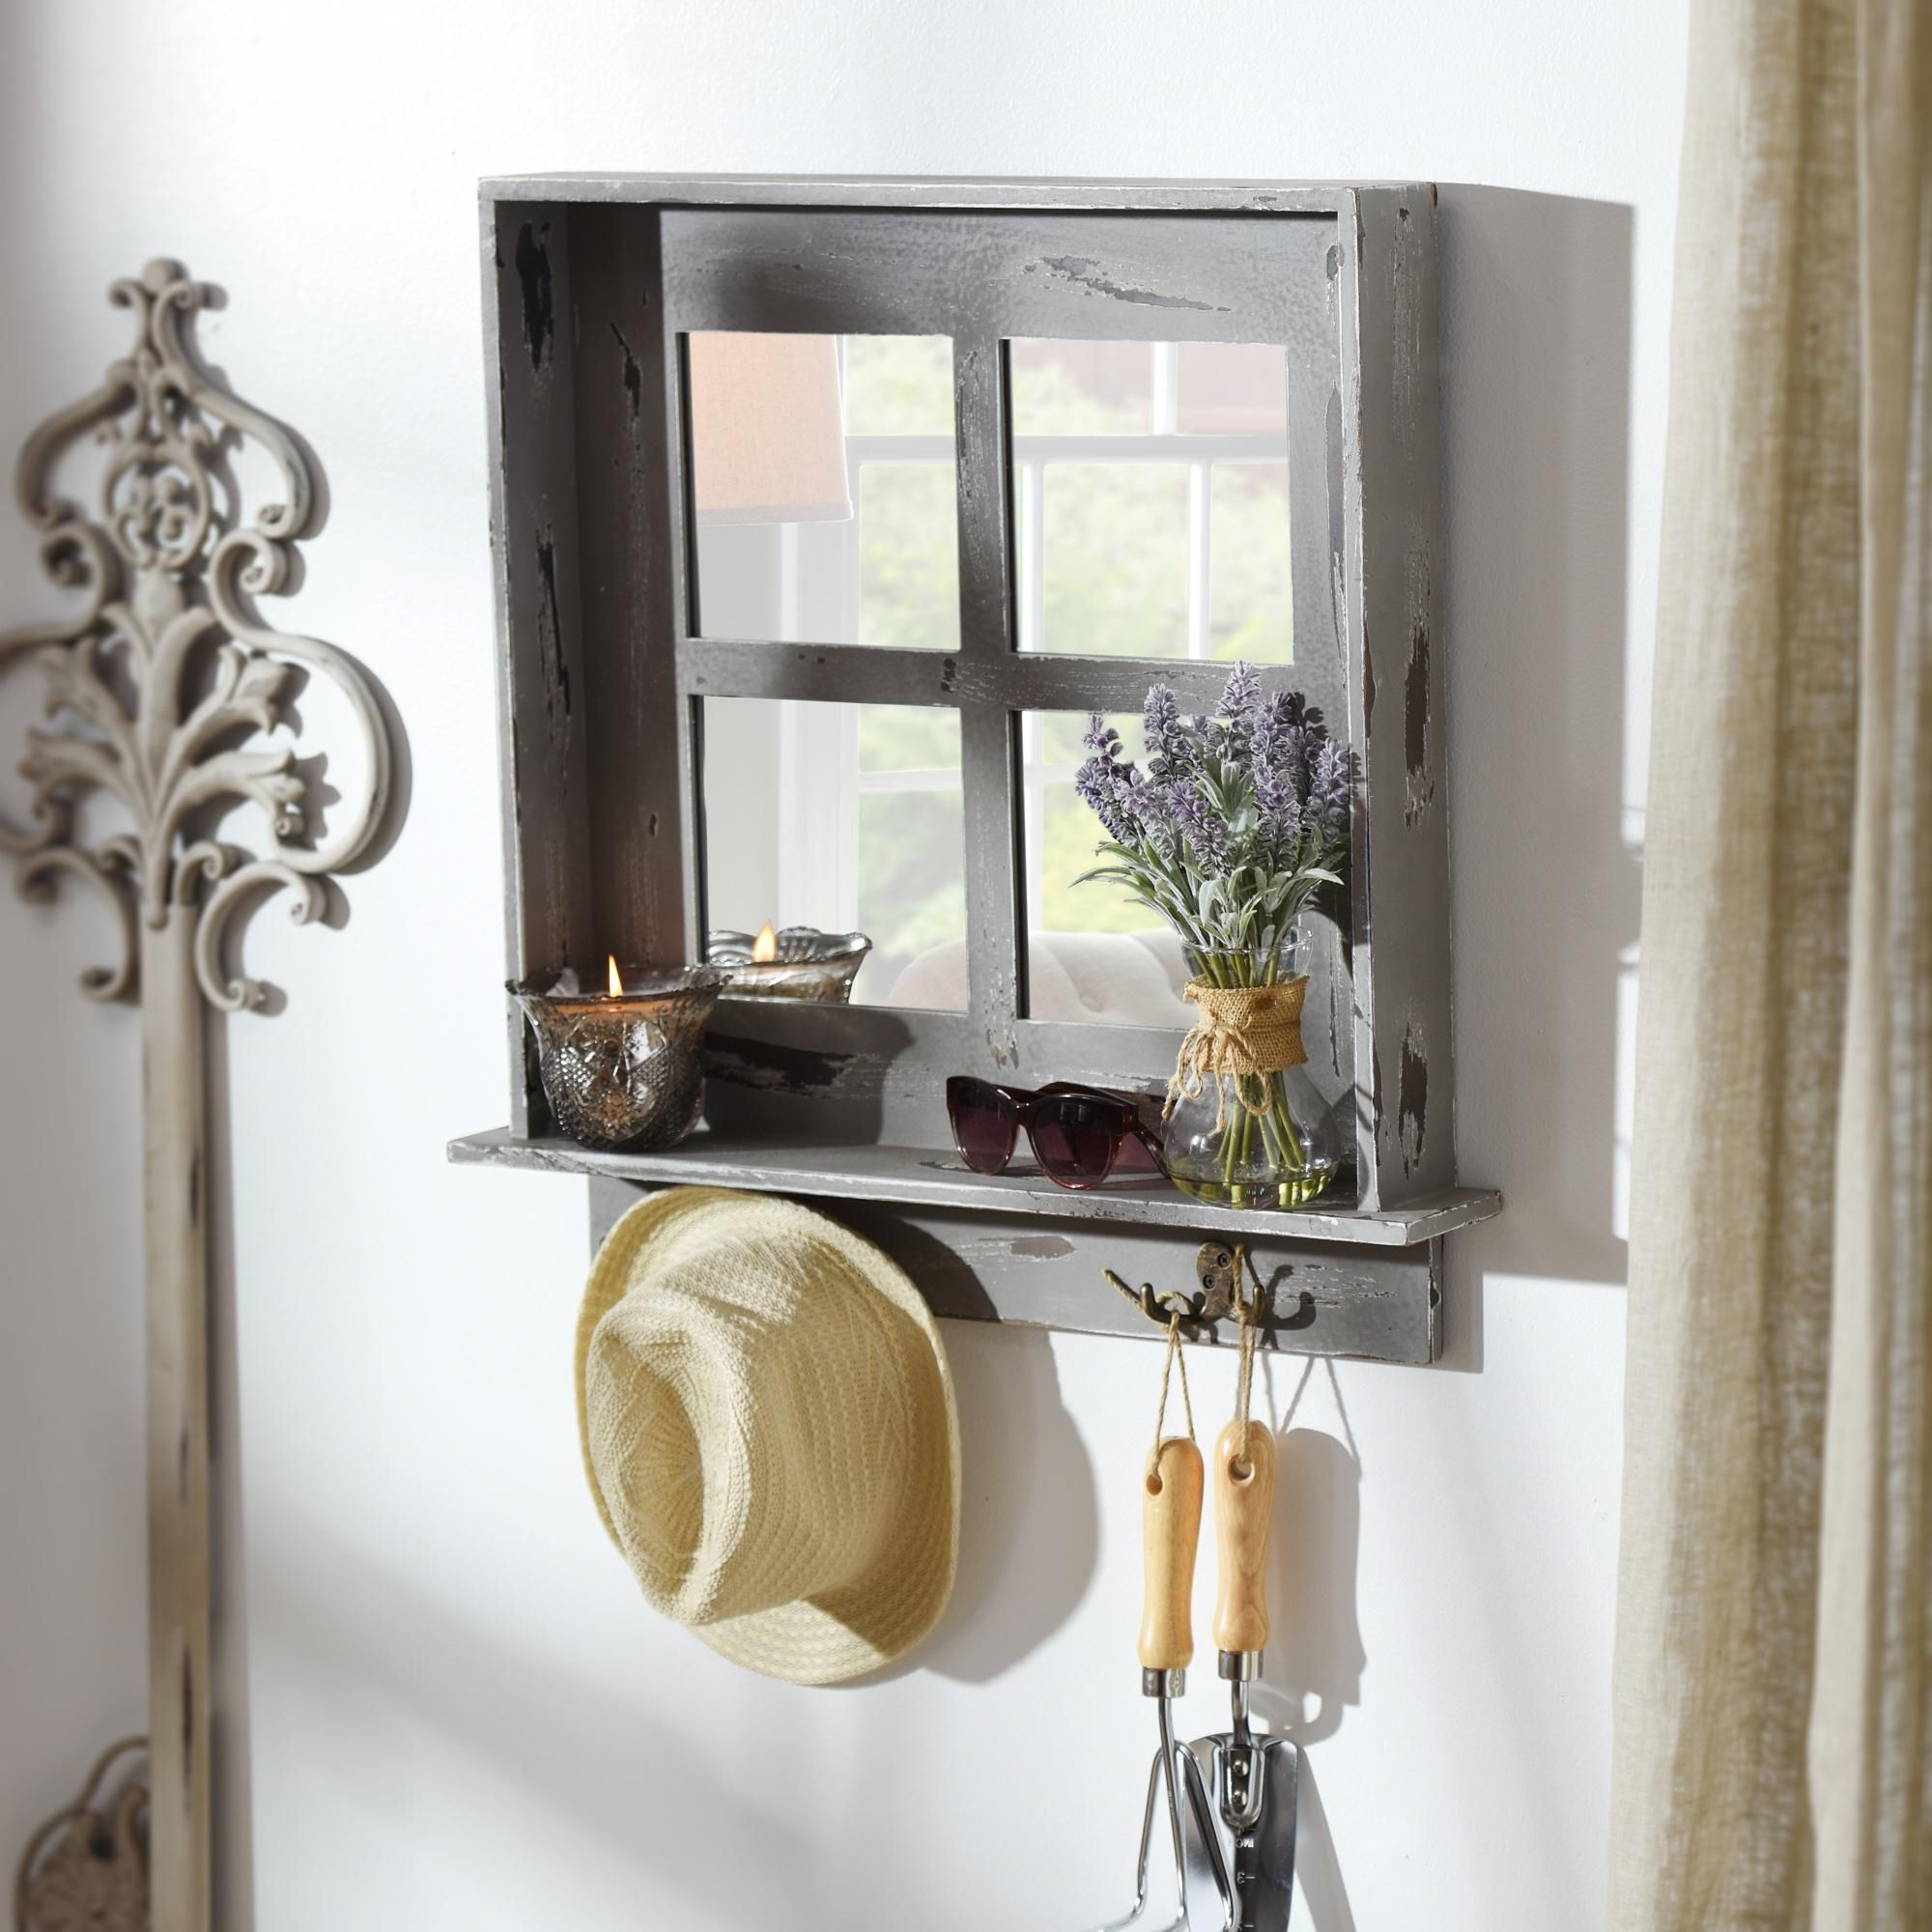 2019 Wall Mirrors With Hooks And Shelf Intended For Product Details Gray Window Pane Wall Shelf Mirror With Hooks In (View 4 of 20)